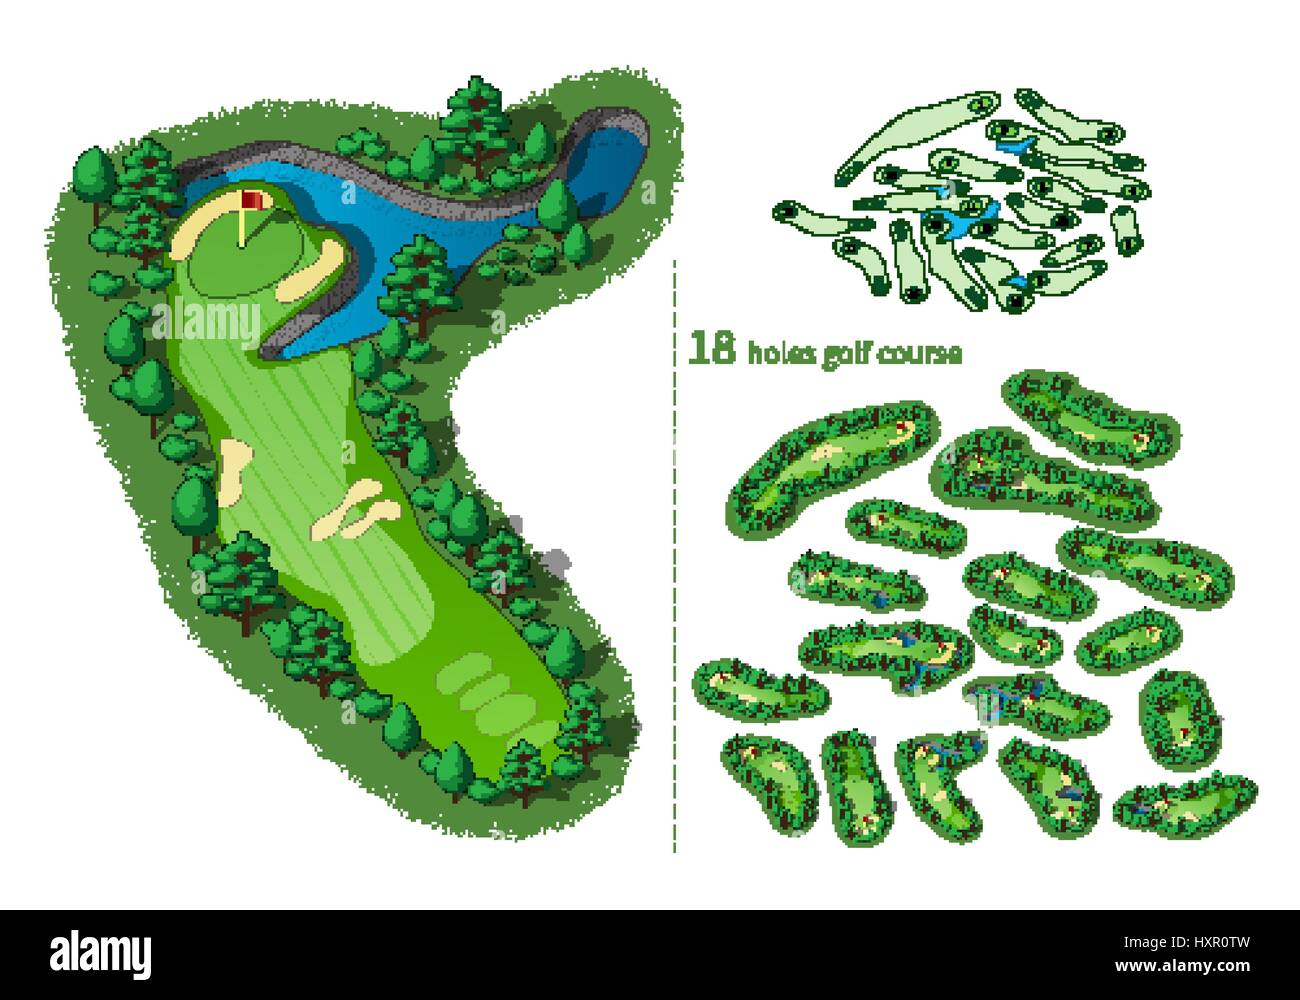 Golf Course Layout High Resolution Stock Photography And Images Alamy